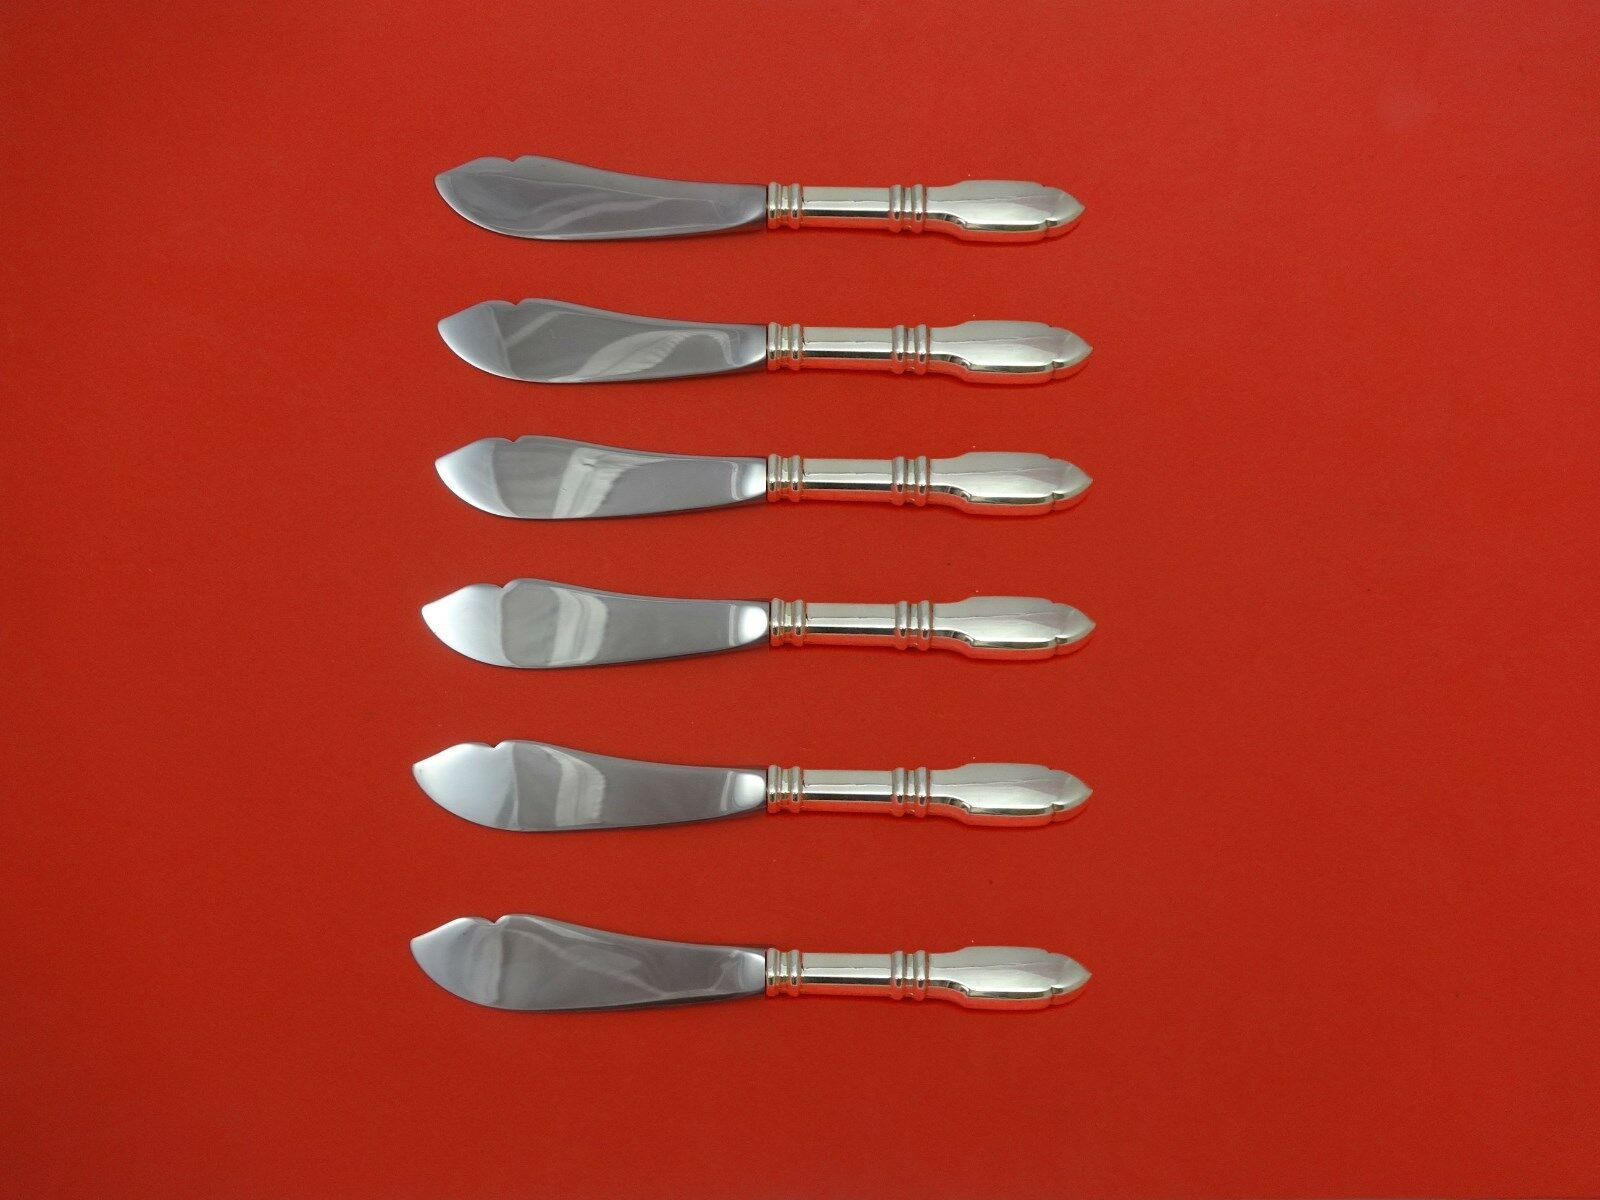 robert bruce by graff w amp d sterling silver trout knife set robert bruce by graff w d sterling silver trout knife set 6 pc custom 7 1 2